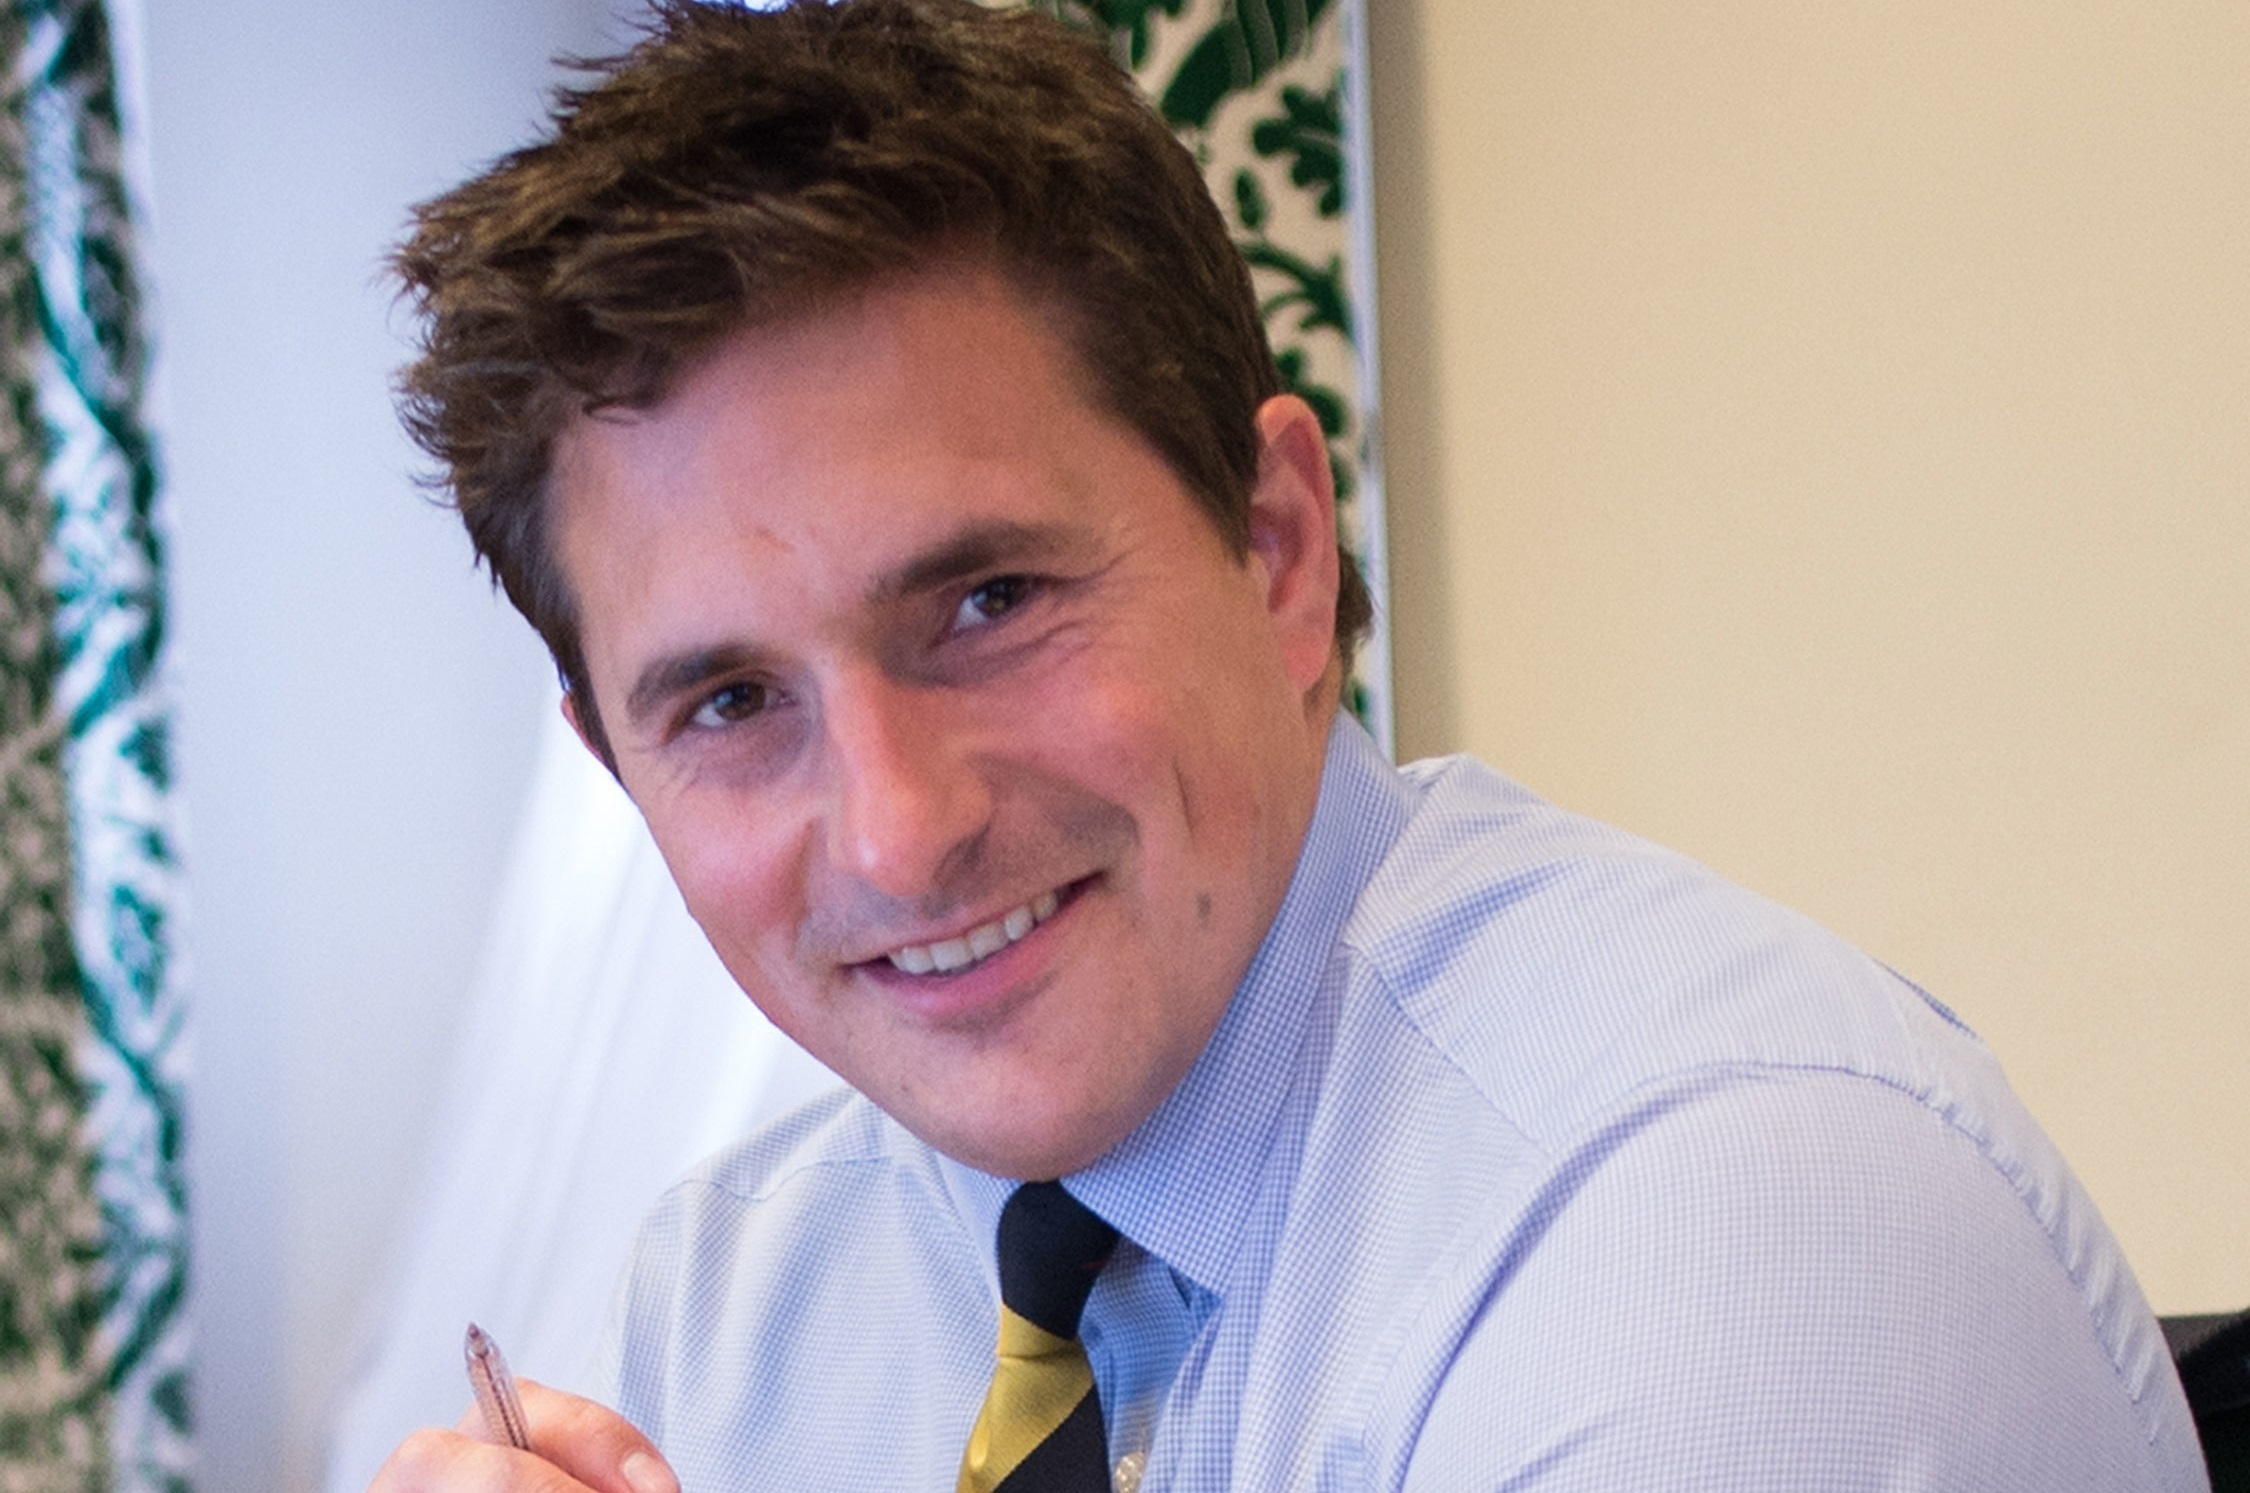 Conservative MP Johnny Mercer has been outspoken about feeling the Tory party's values no longer match his own